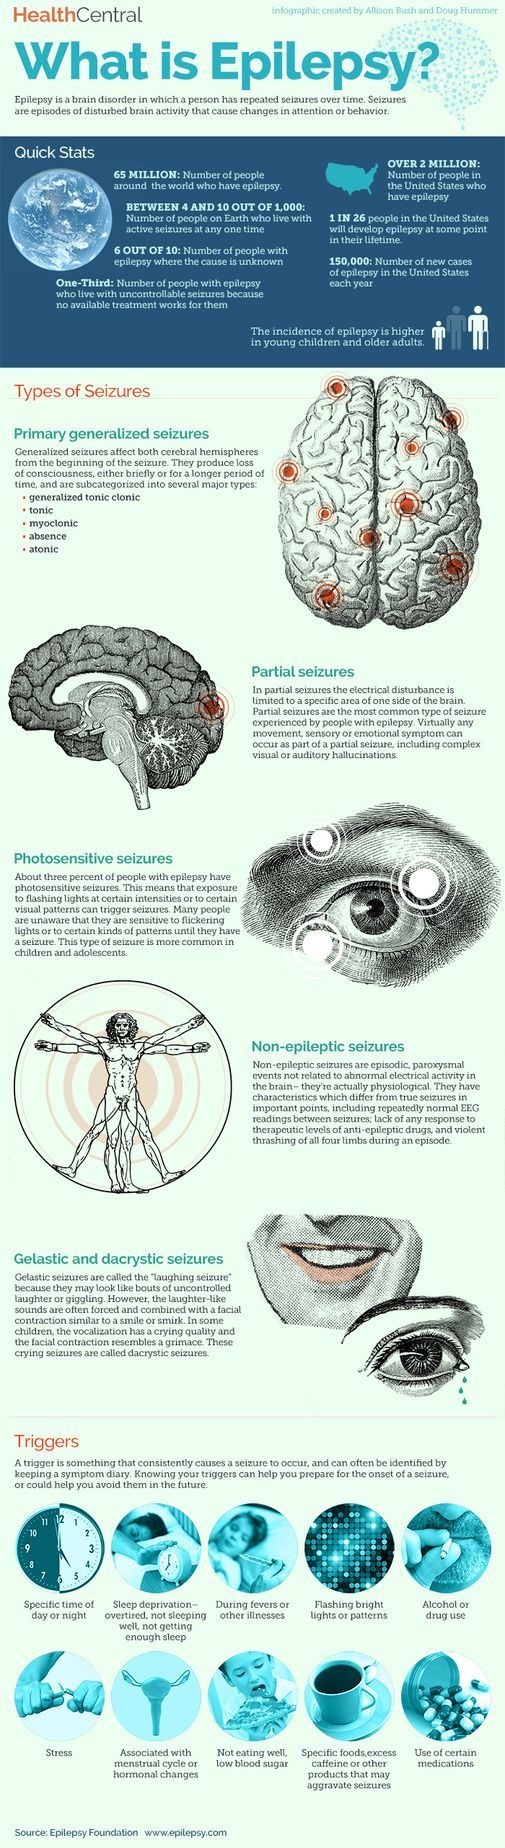 is Epilepsy? (Infographic) Epilepsy is the most common brain disorder and it can be triggered by alcohol or drug useEpilepsy is the most common brain disorder and it can be triggered by alcohol or drug use